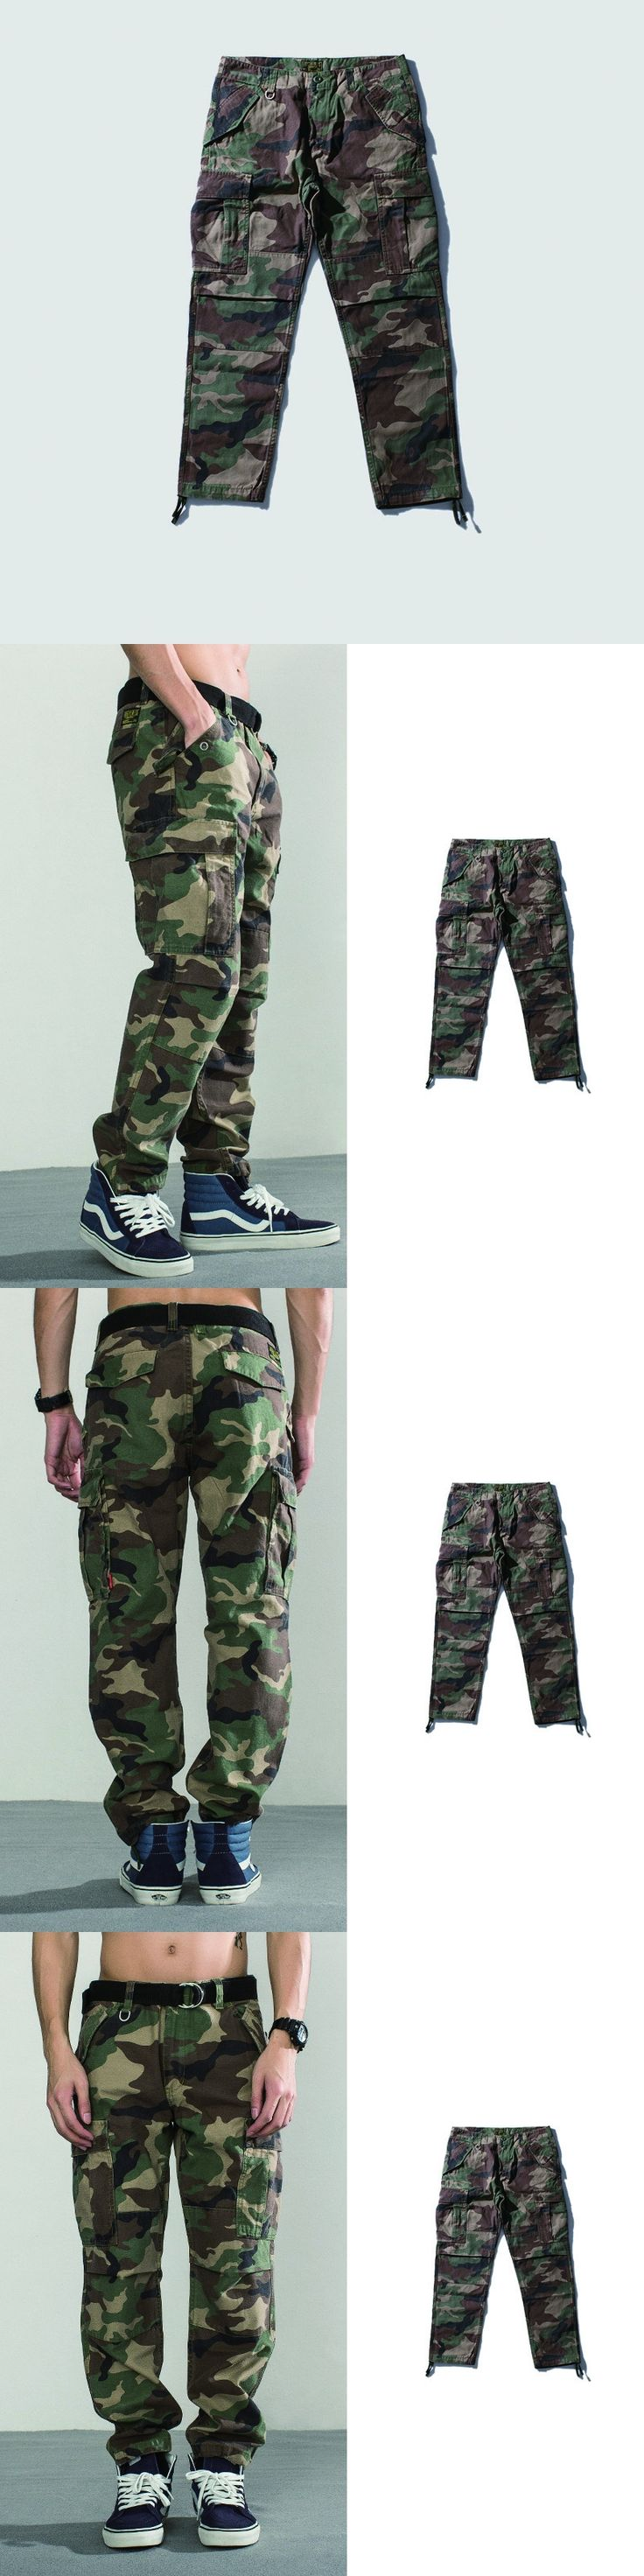 Men's Cargo Pants Camouflage Army Pants For Men Military masculino cool sweat Fashion Full Length Joggers Pants Men